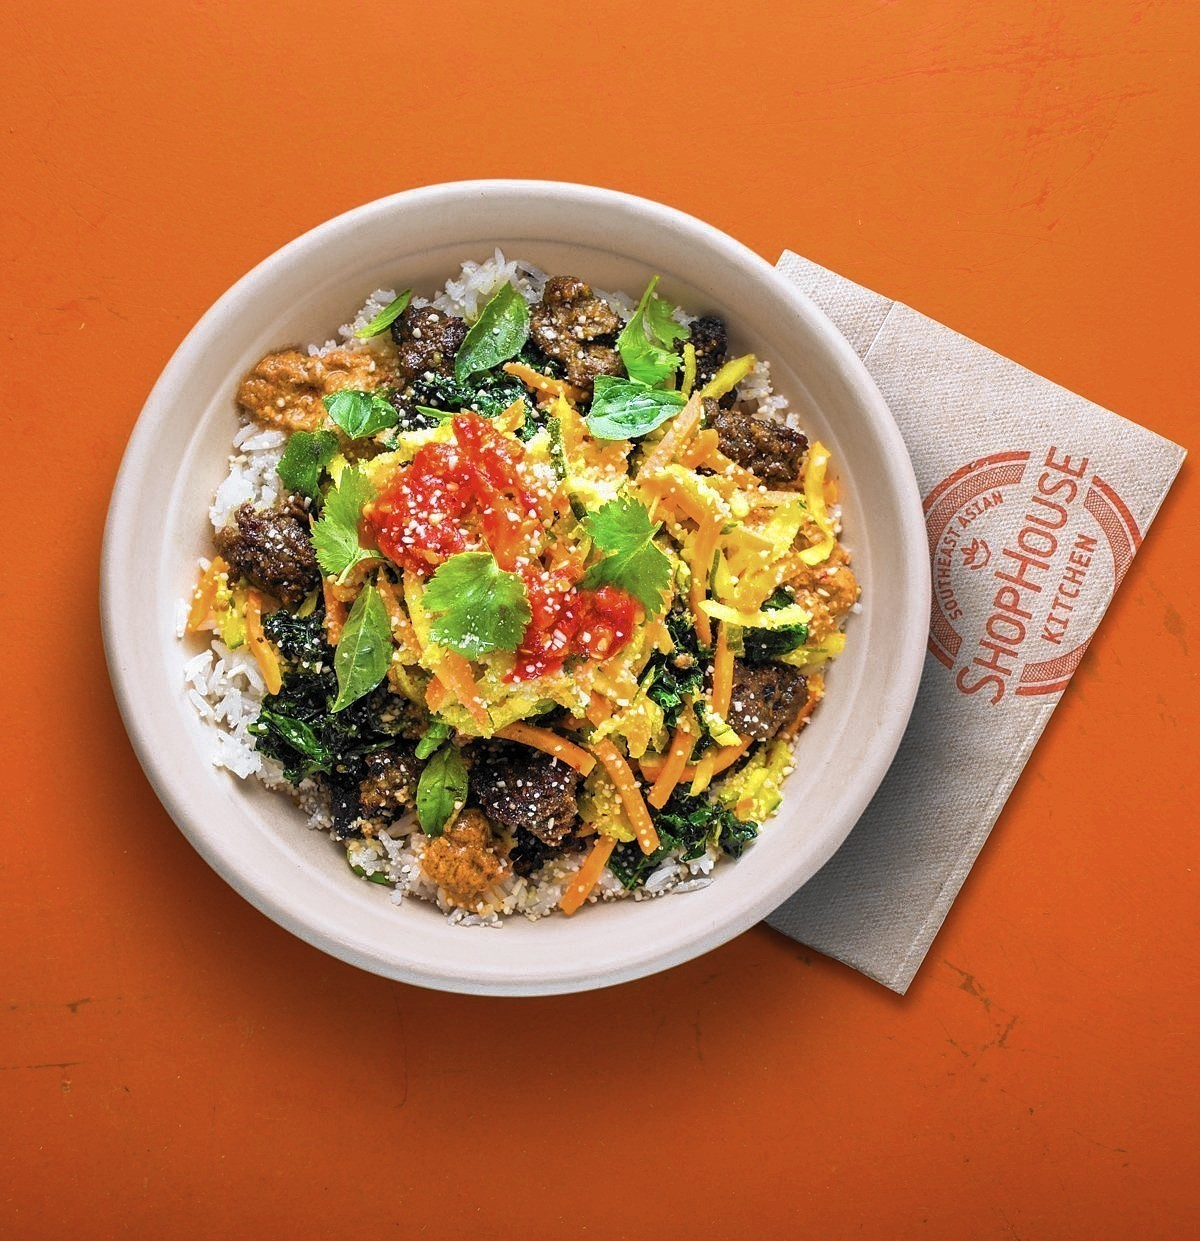 Shophouse Chipotle S Asian Food Chain Now Open In The Loop